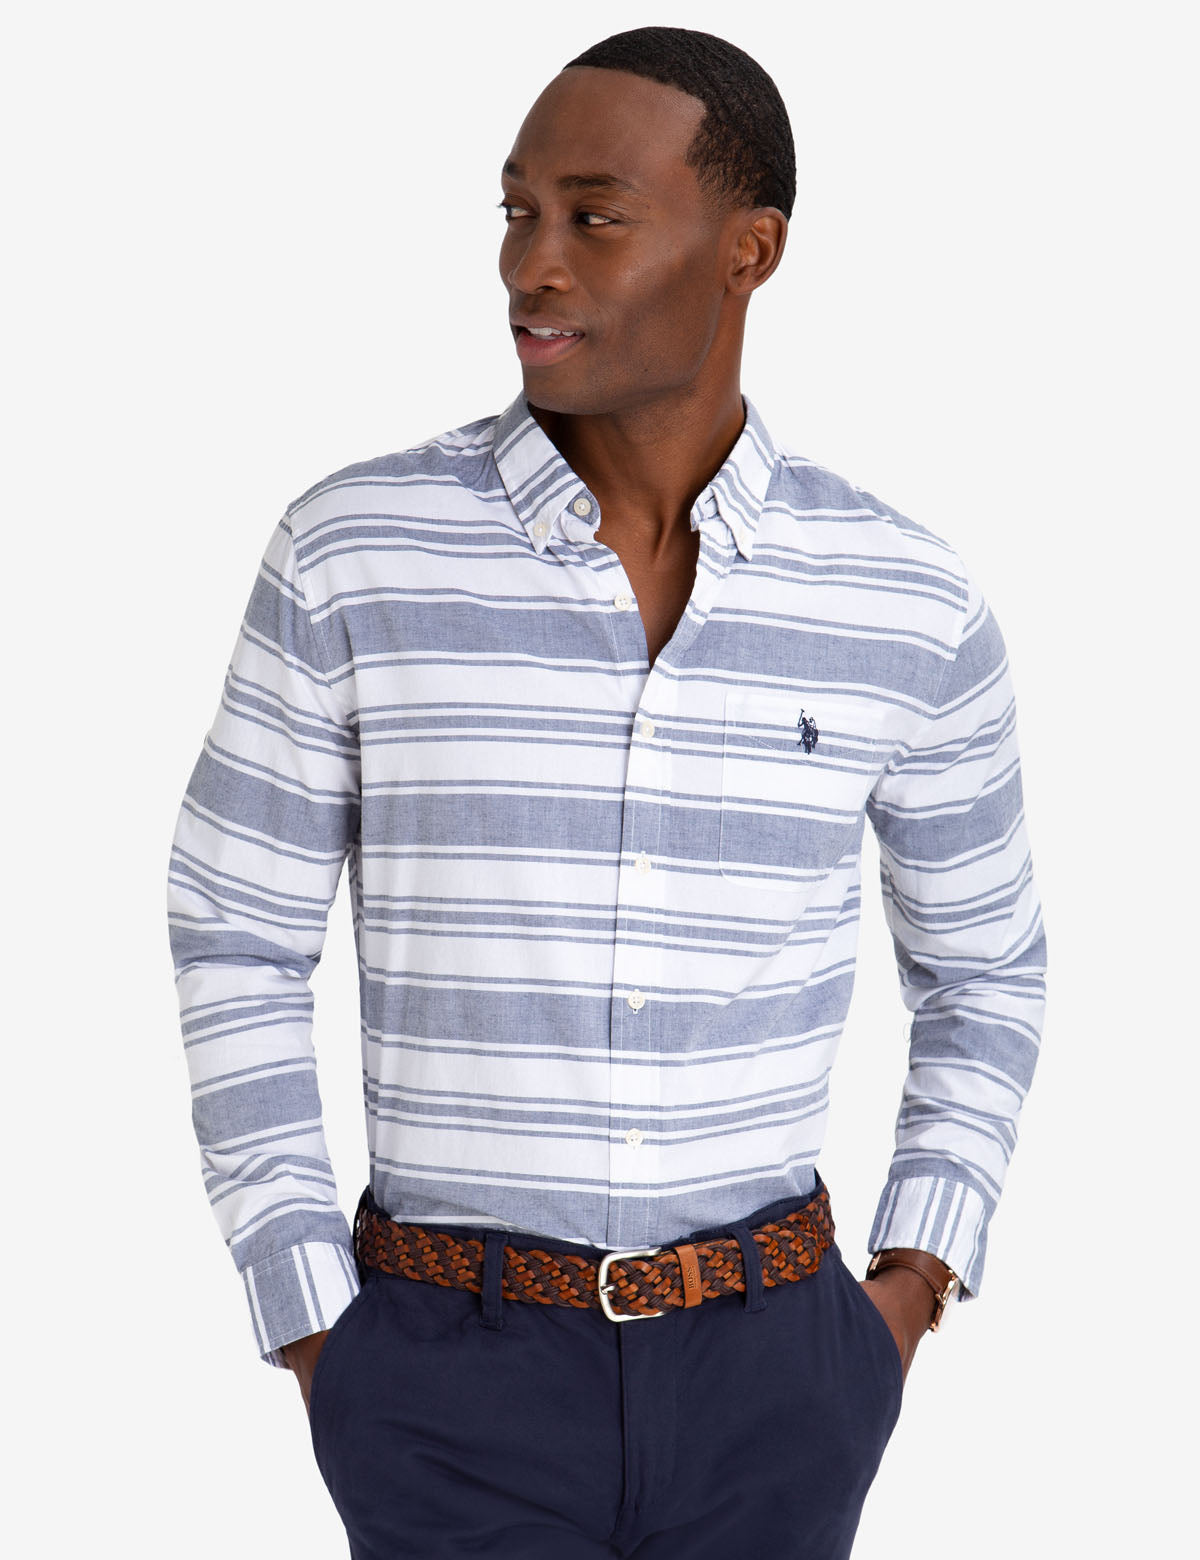 BLACK MALLET CLASSIC FIT HORIZONTAL STRIPE SHIRT